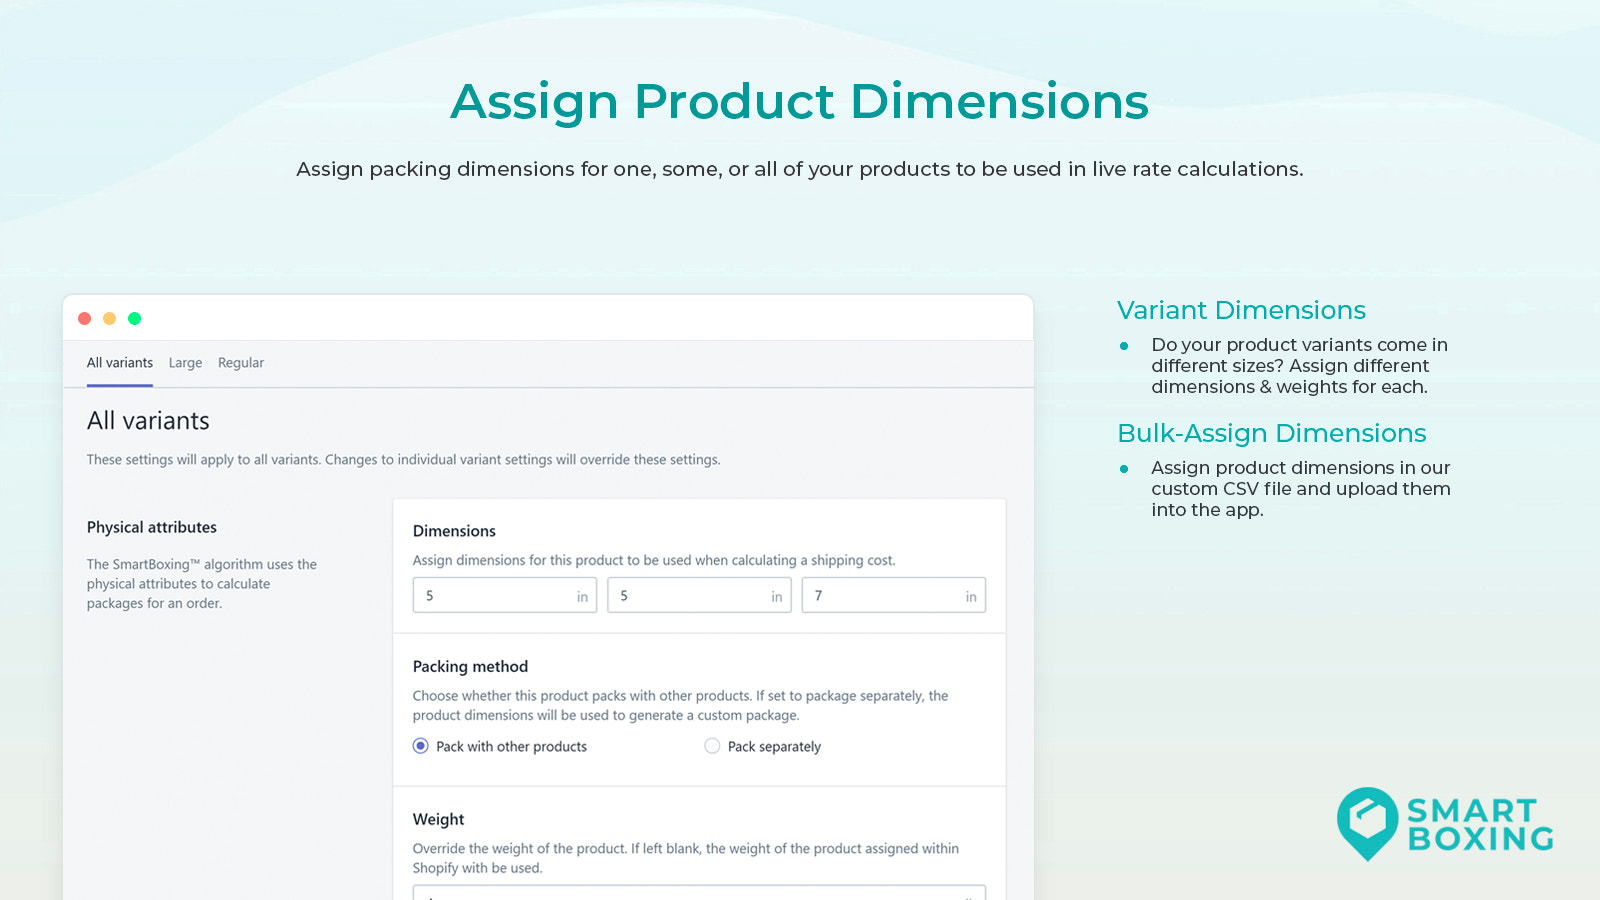 Assign product dimensions for volumetric rates at checkout